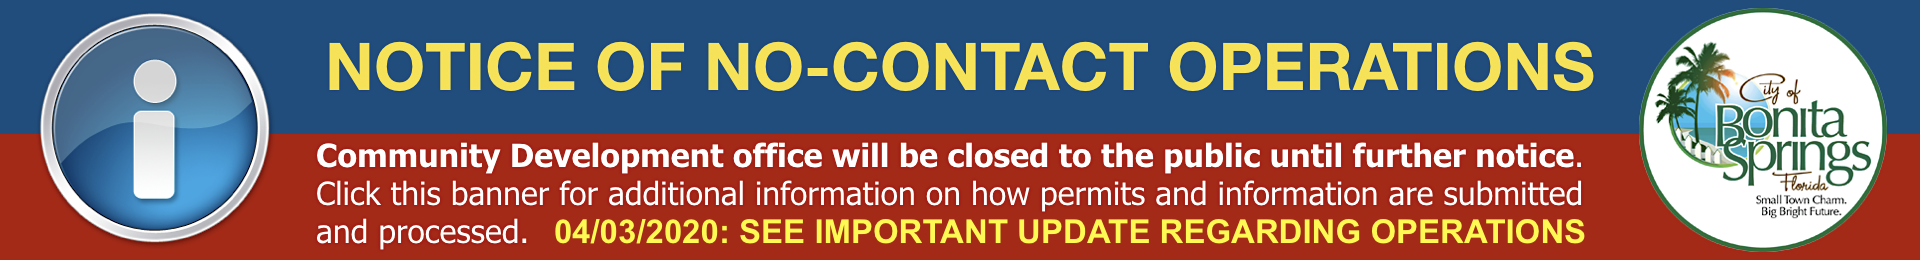 Notice of No Contact Operations Banner Image Link